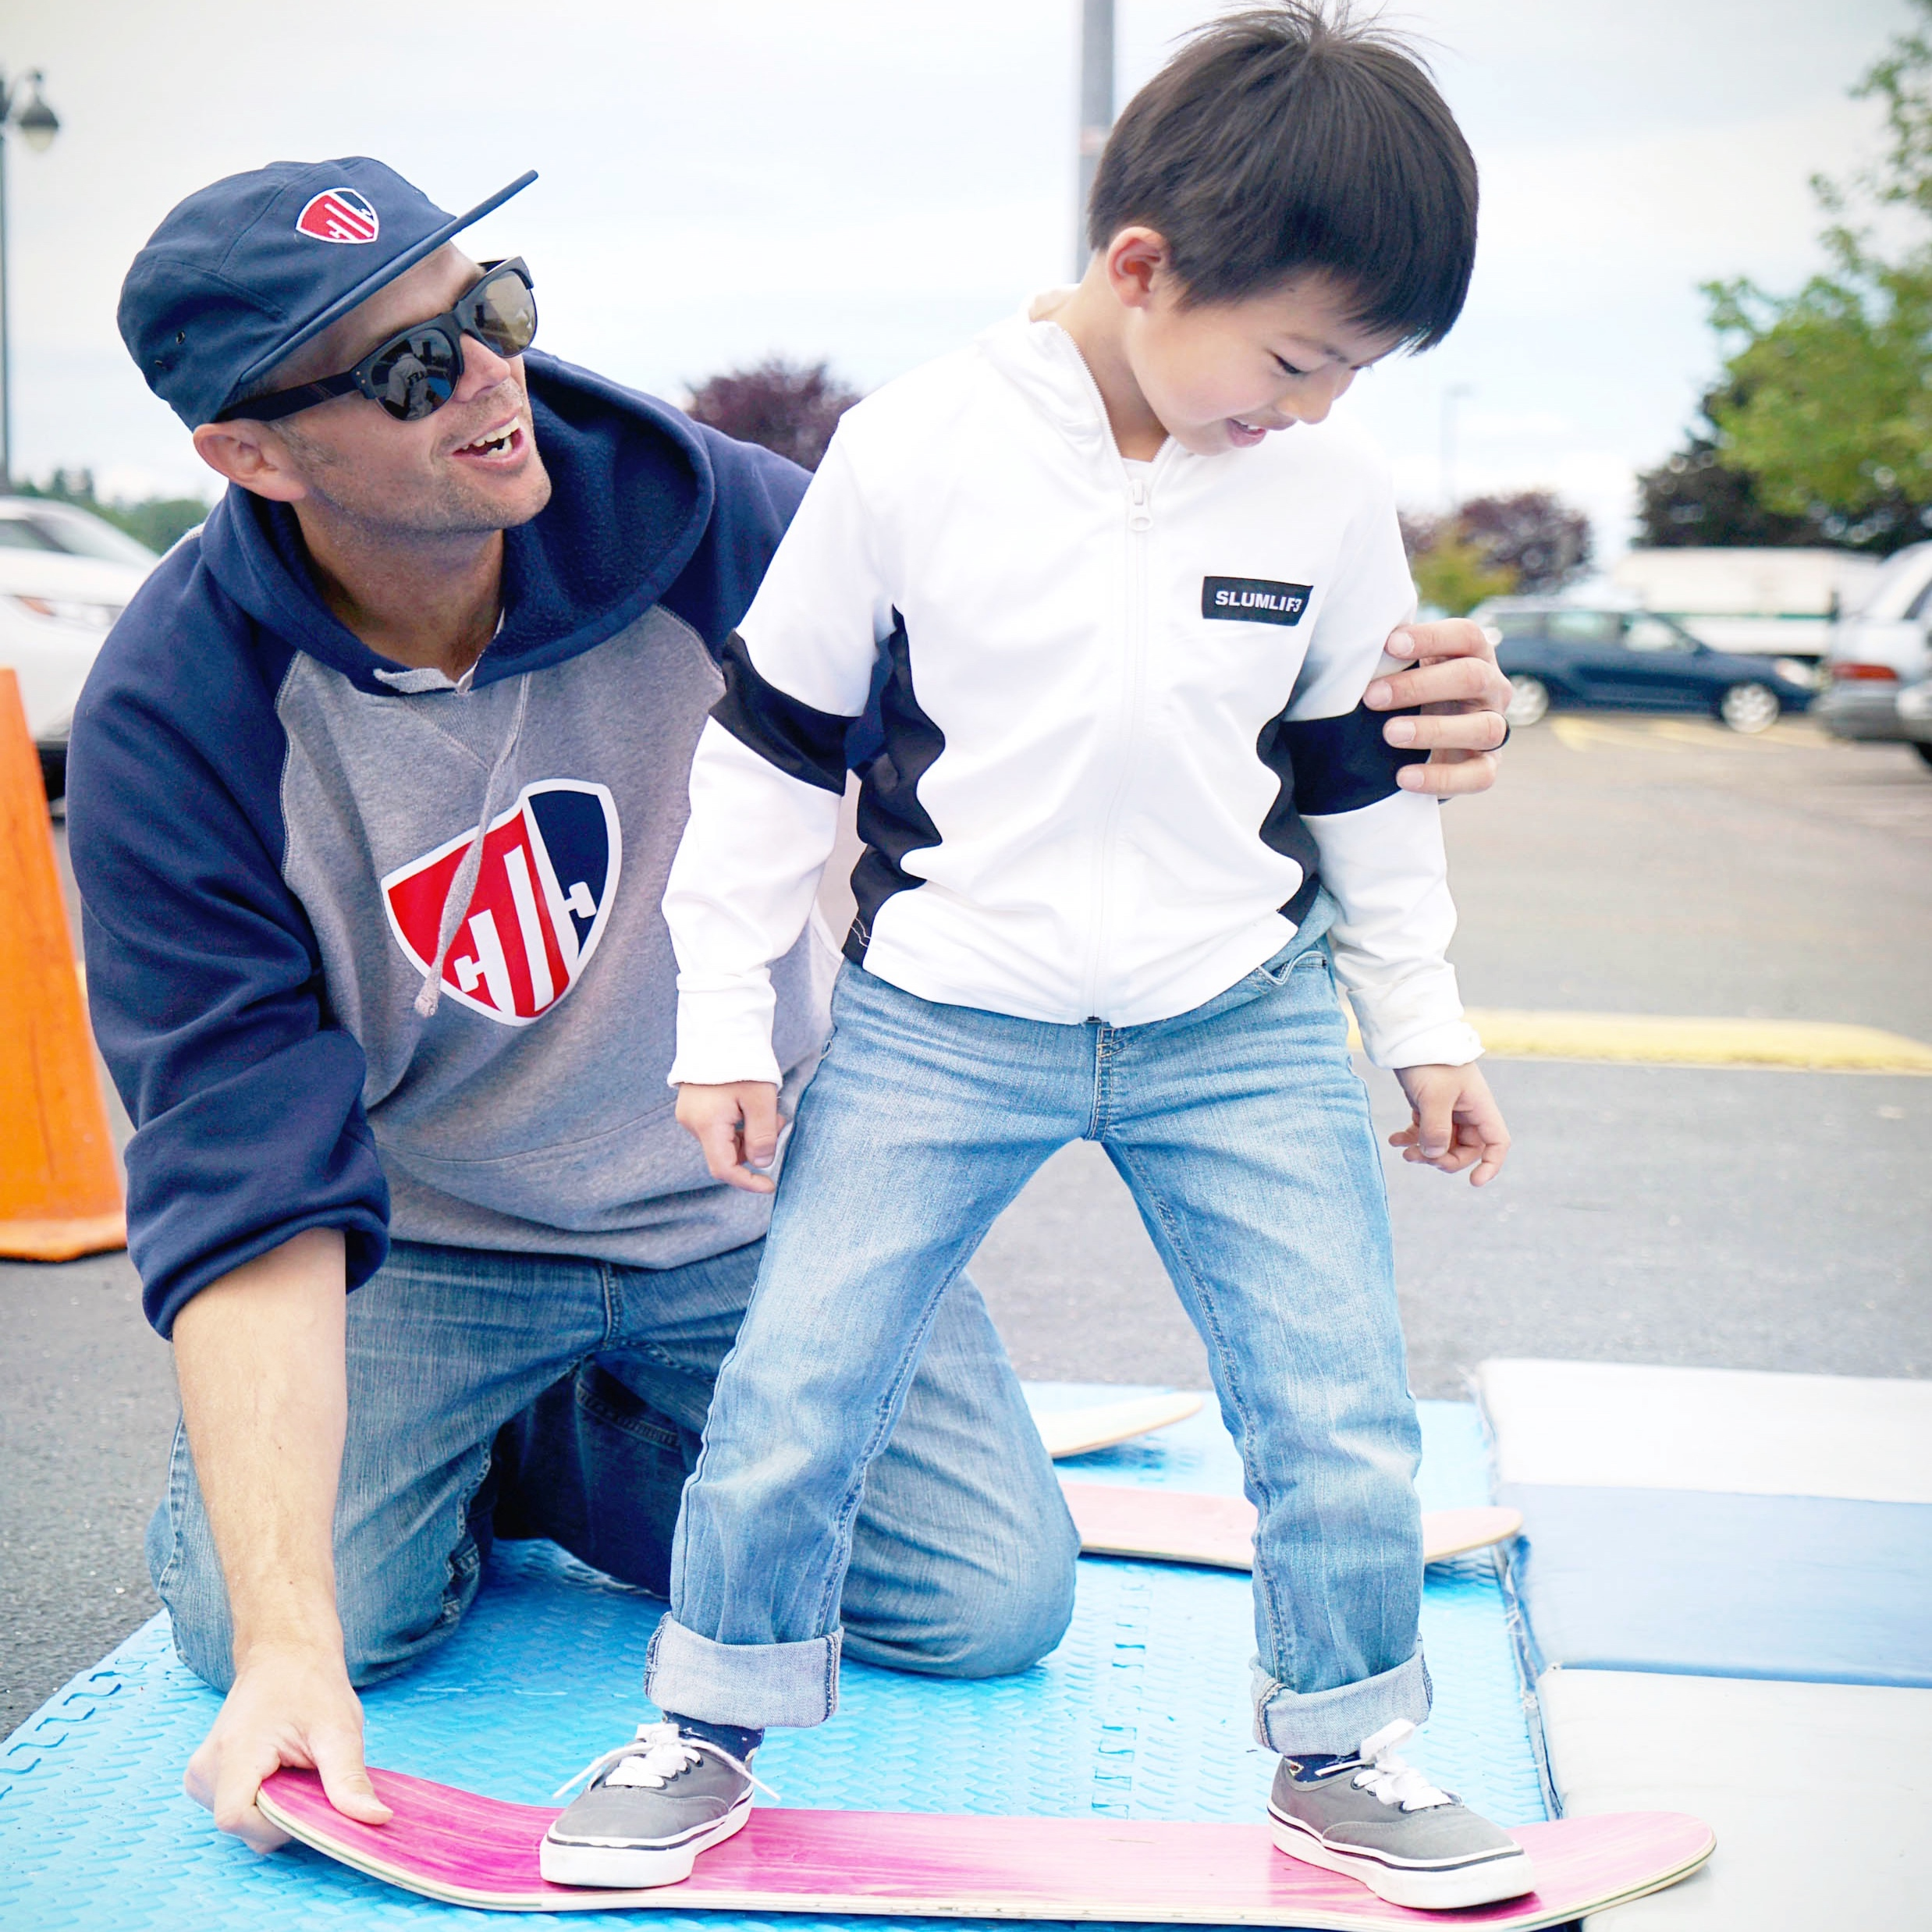 We offer teaching resources through our     Educator Membership     ,   including an interactive e-course, the completion of which also serves as a Level 1 Certification.   -For level 2 we offer in-person examination.    We train and certify Skateboard Instructors   using our proven methods to ensure that they are able to provide an engaging and memorable learning experience. And we offer invaluable ongoing resources to skateboard educators through our    Educator Membership   , which has a threshold for entry.